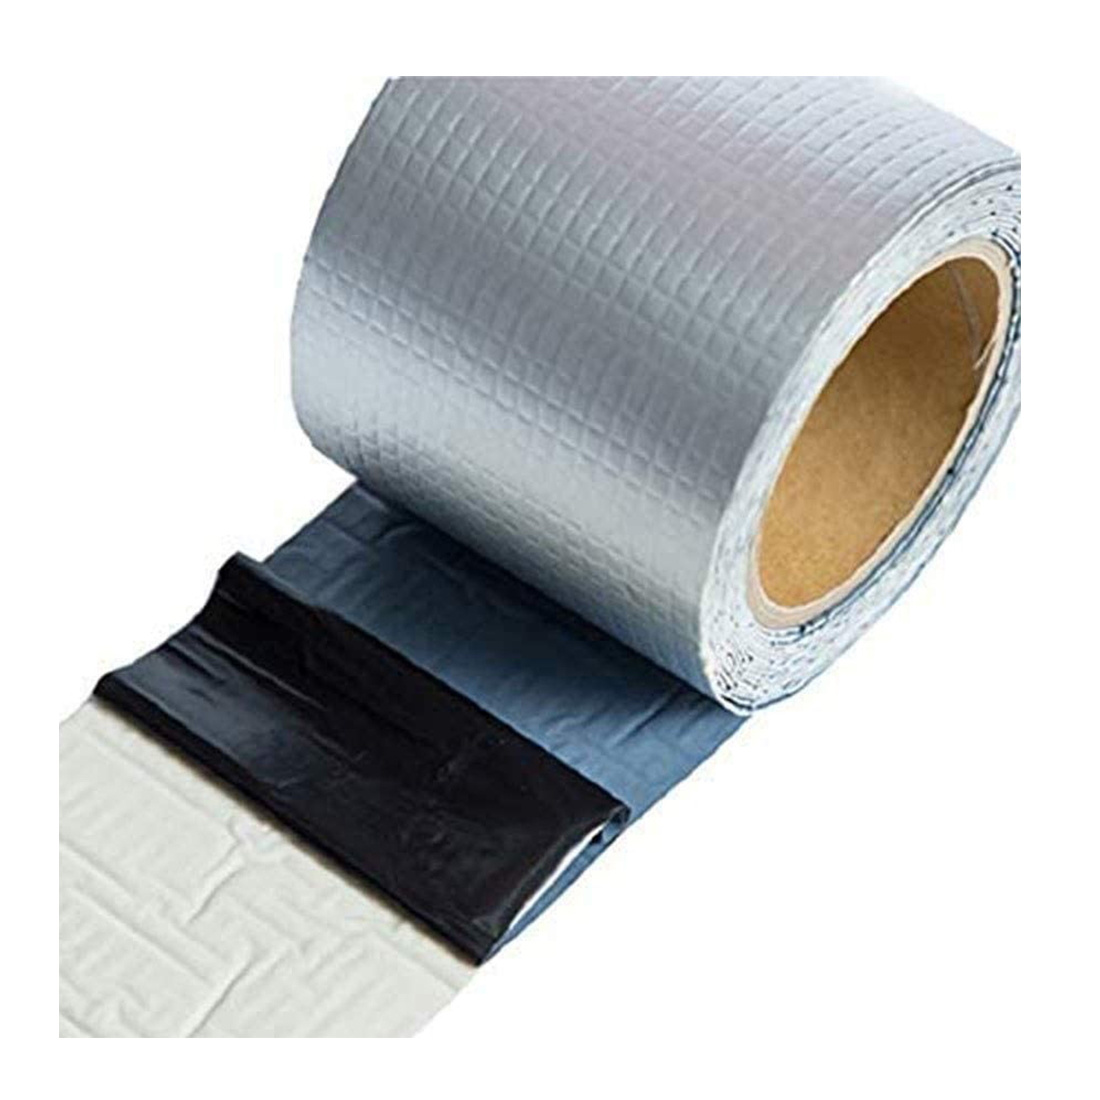 China Self Adhesive Reinforced Fiberglass Reinforced Aluminum Foil Duct Seal Stivky Tape China Stivky Tape Seal Stivky Tape